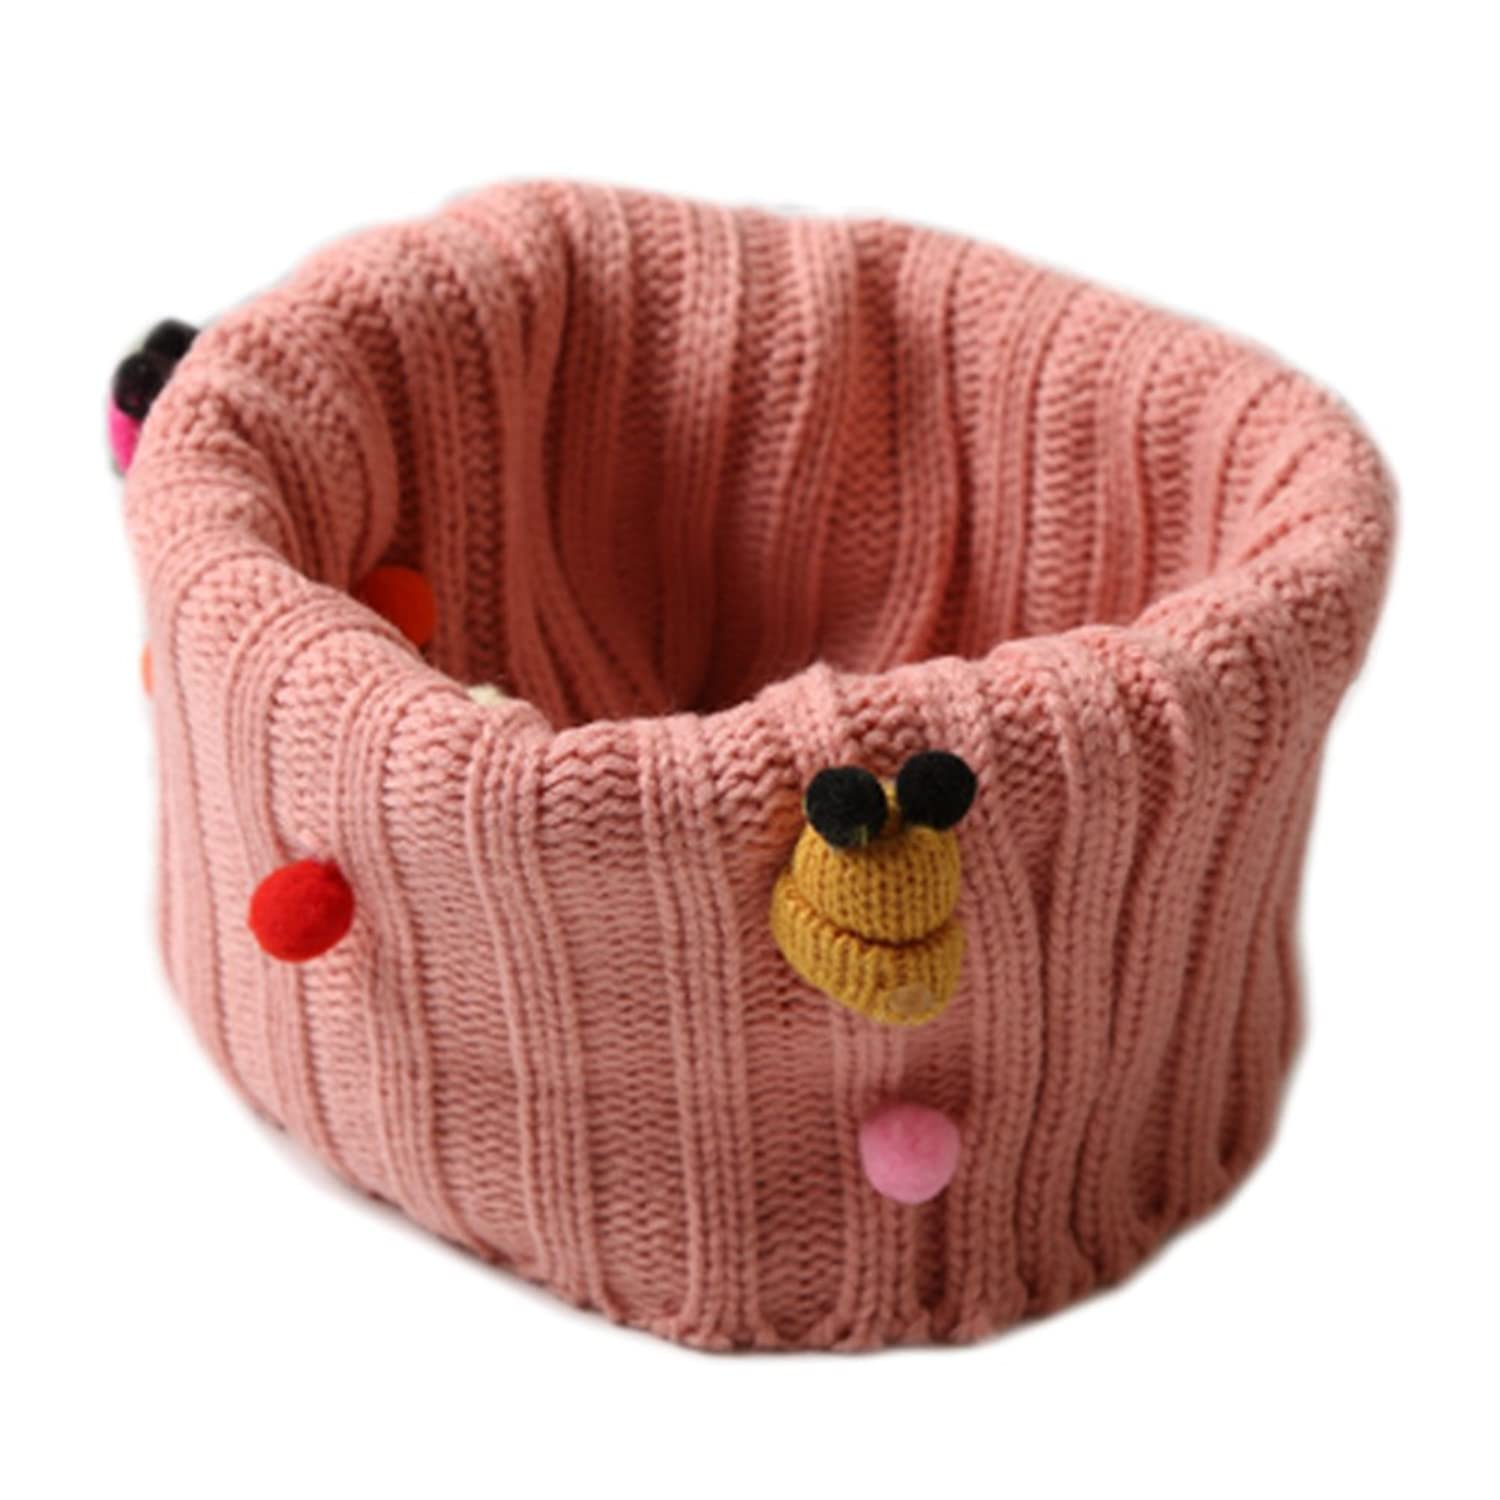 Winter Cartoon Thick Knit Soft Warm Wool Cold Weather Scarf Wrap for Boys and Girls, Pink